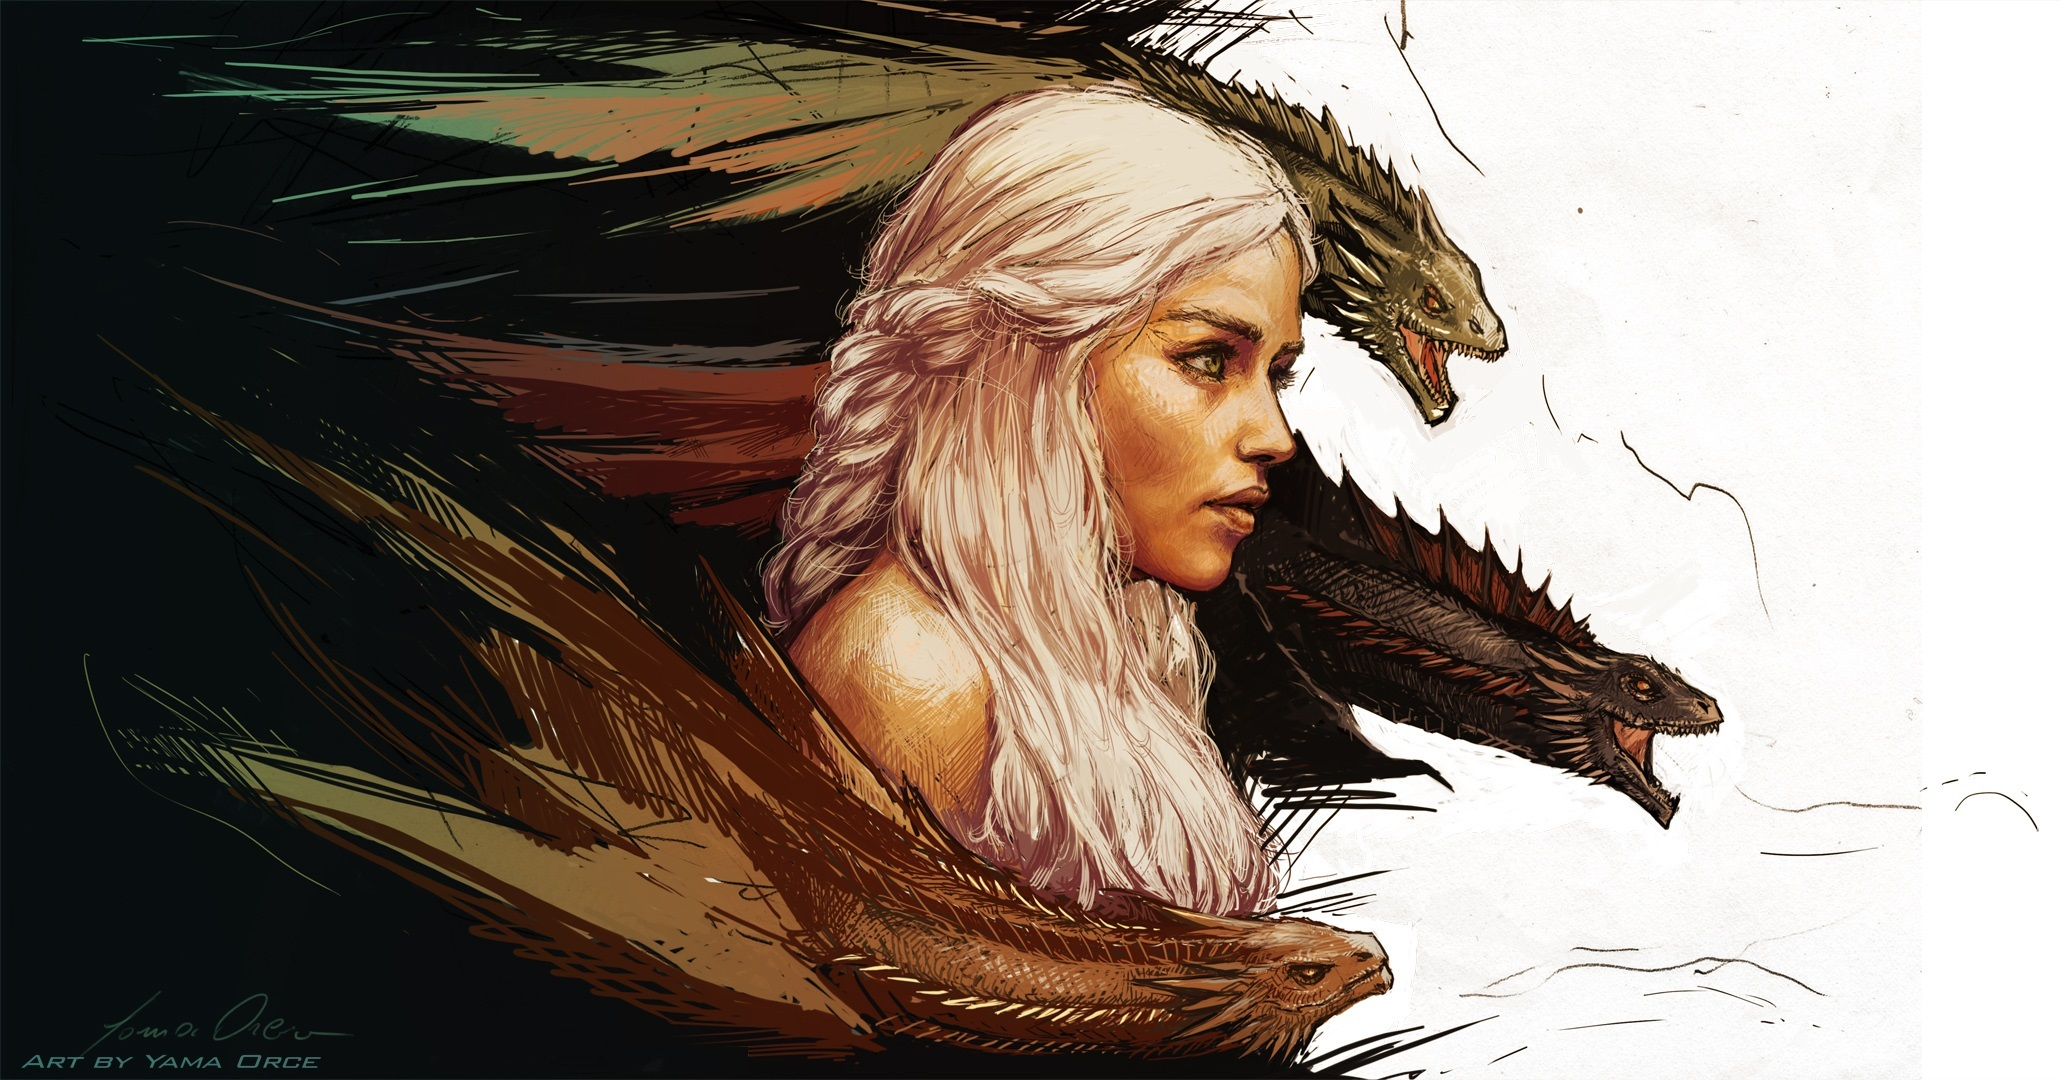 Game of thrones Daenerys Targaryen art fantasy dragon dragons 2064x1080